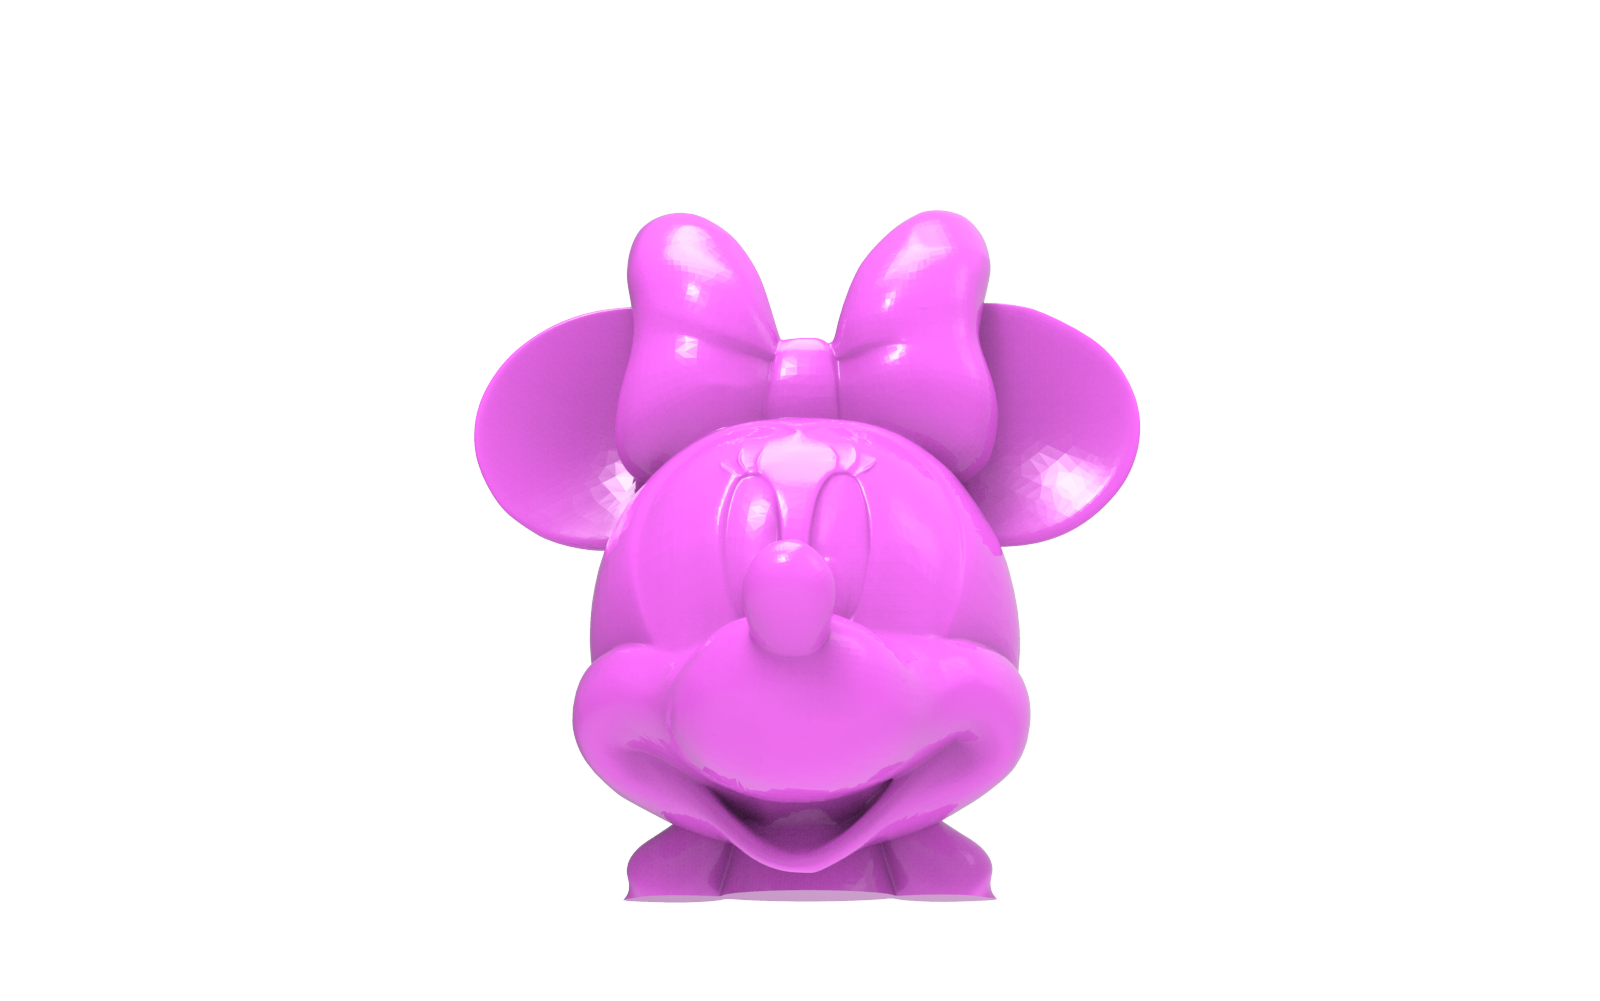 untitled.1637.png Download free STL file Minnie Mouse head • 3D print object, hcchong